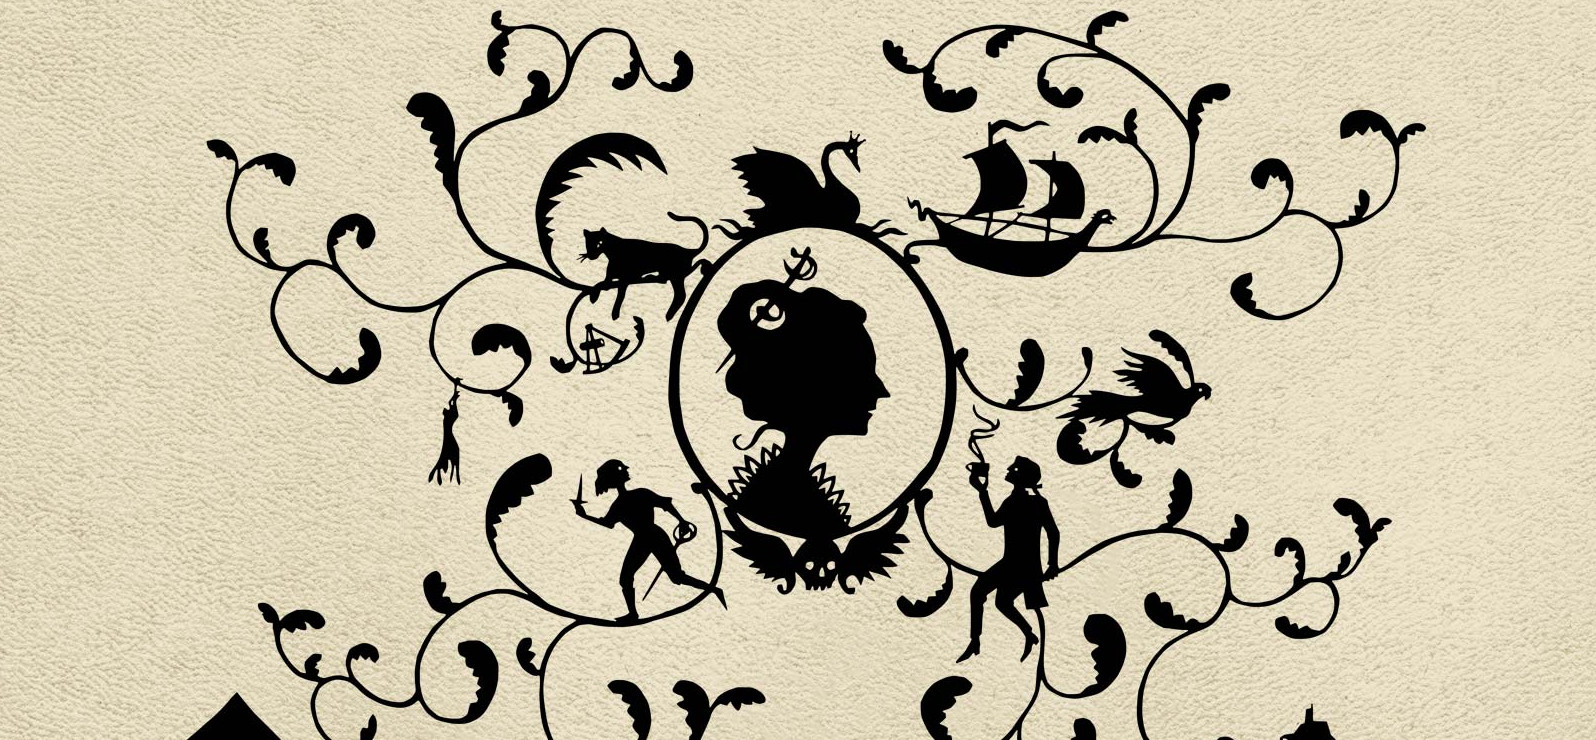 Tremontaine: Lessons from sharing my famous, award-winning fantasy world